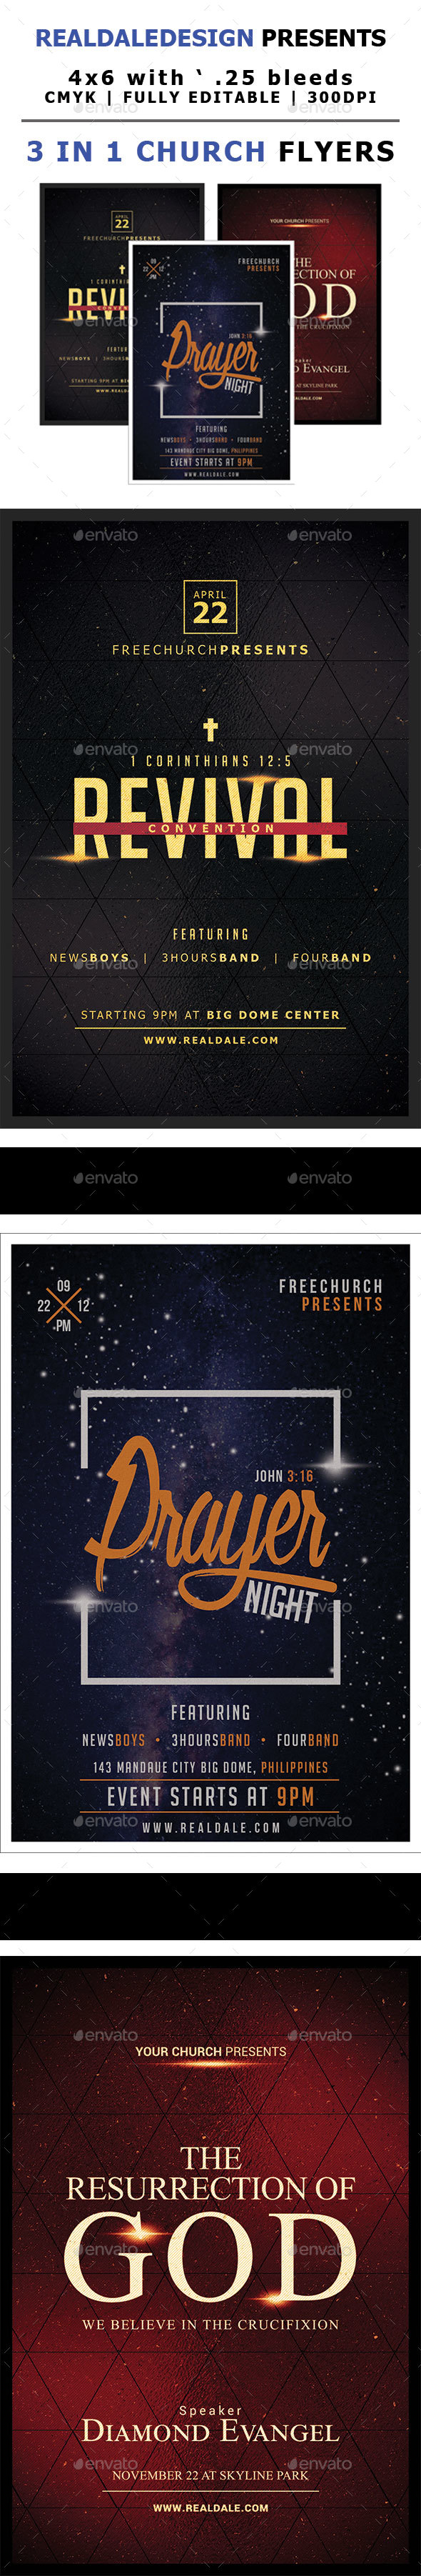 GraphicRiver 3 in 1 Church Flyers Bundle Vol 1 21189383